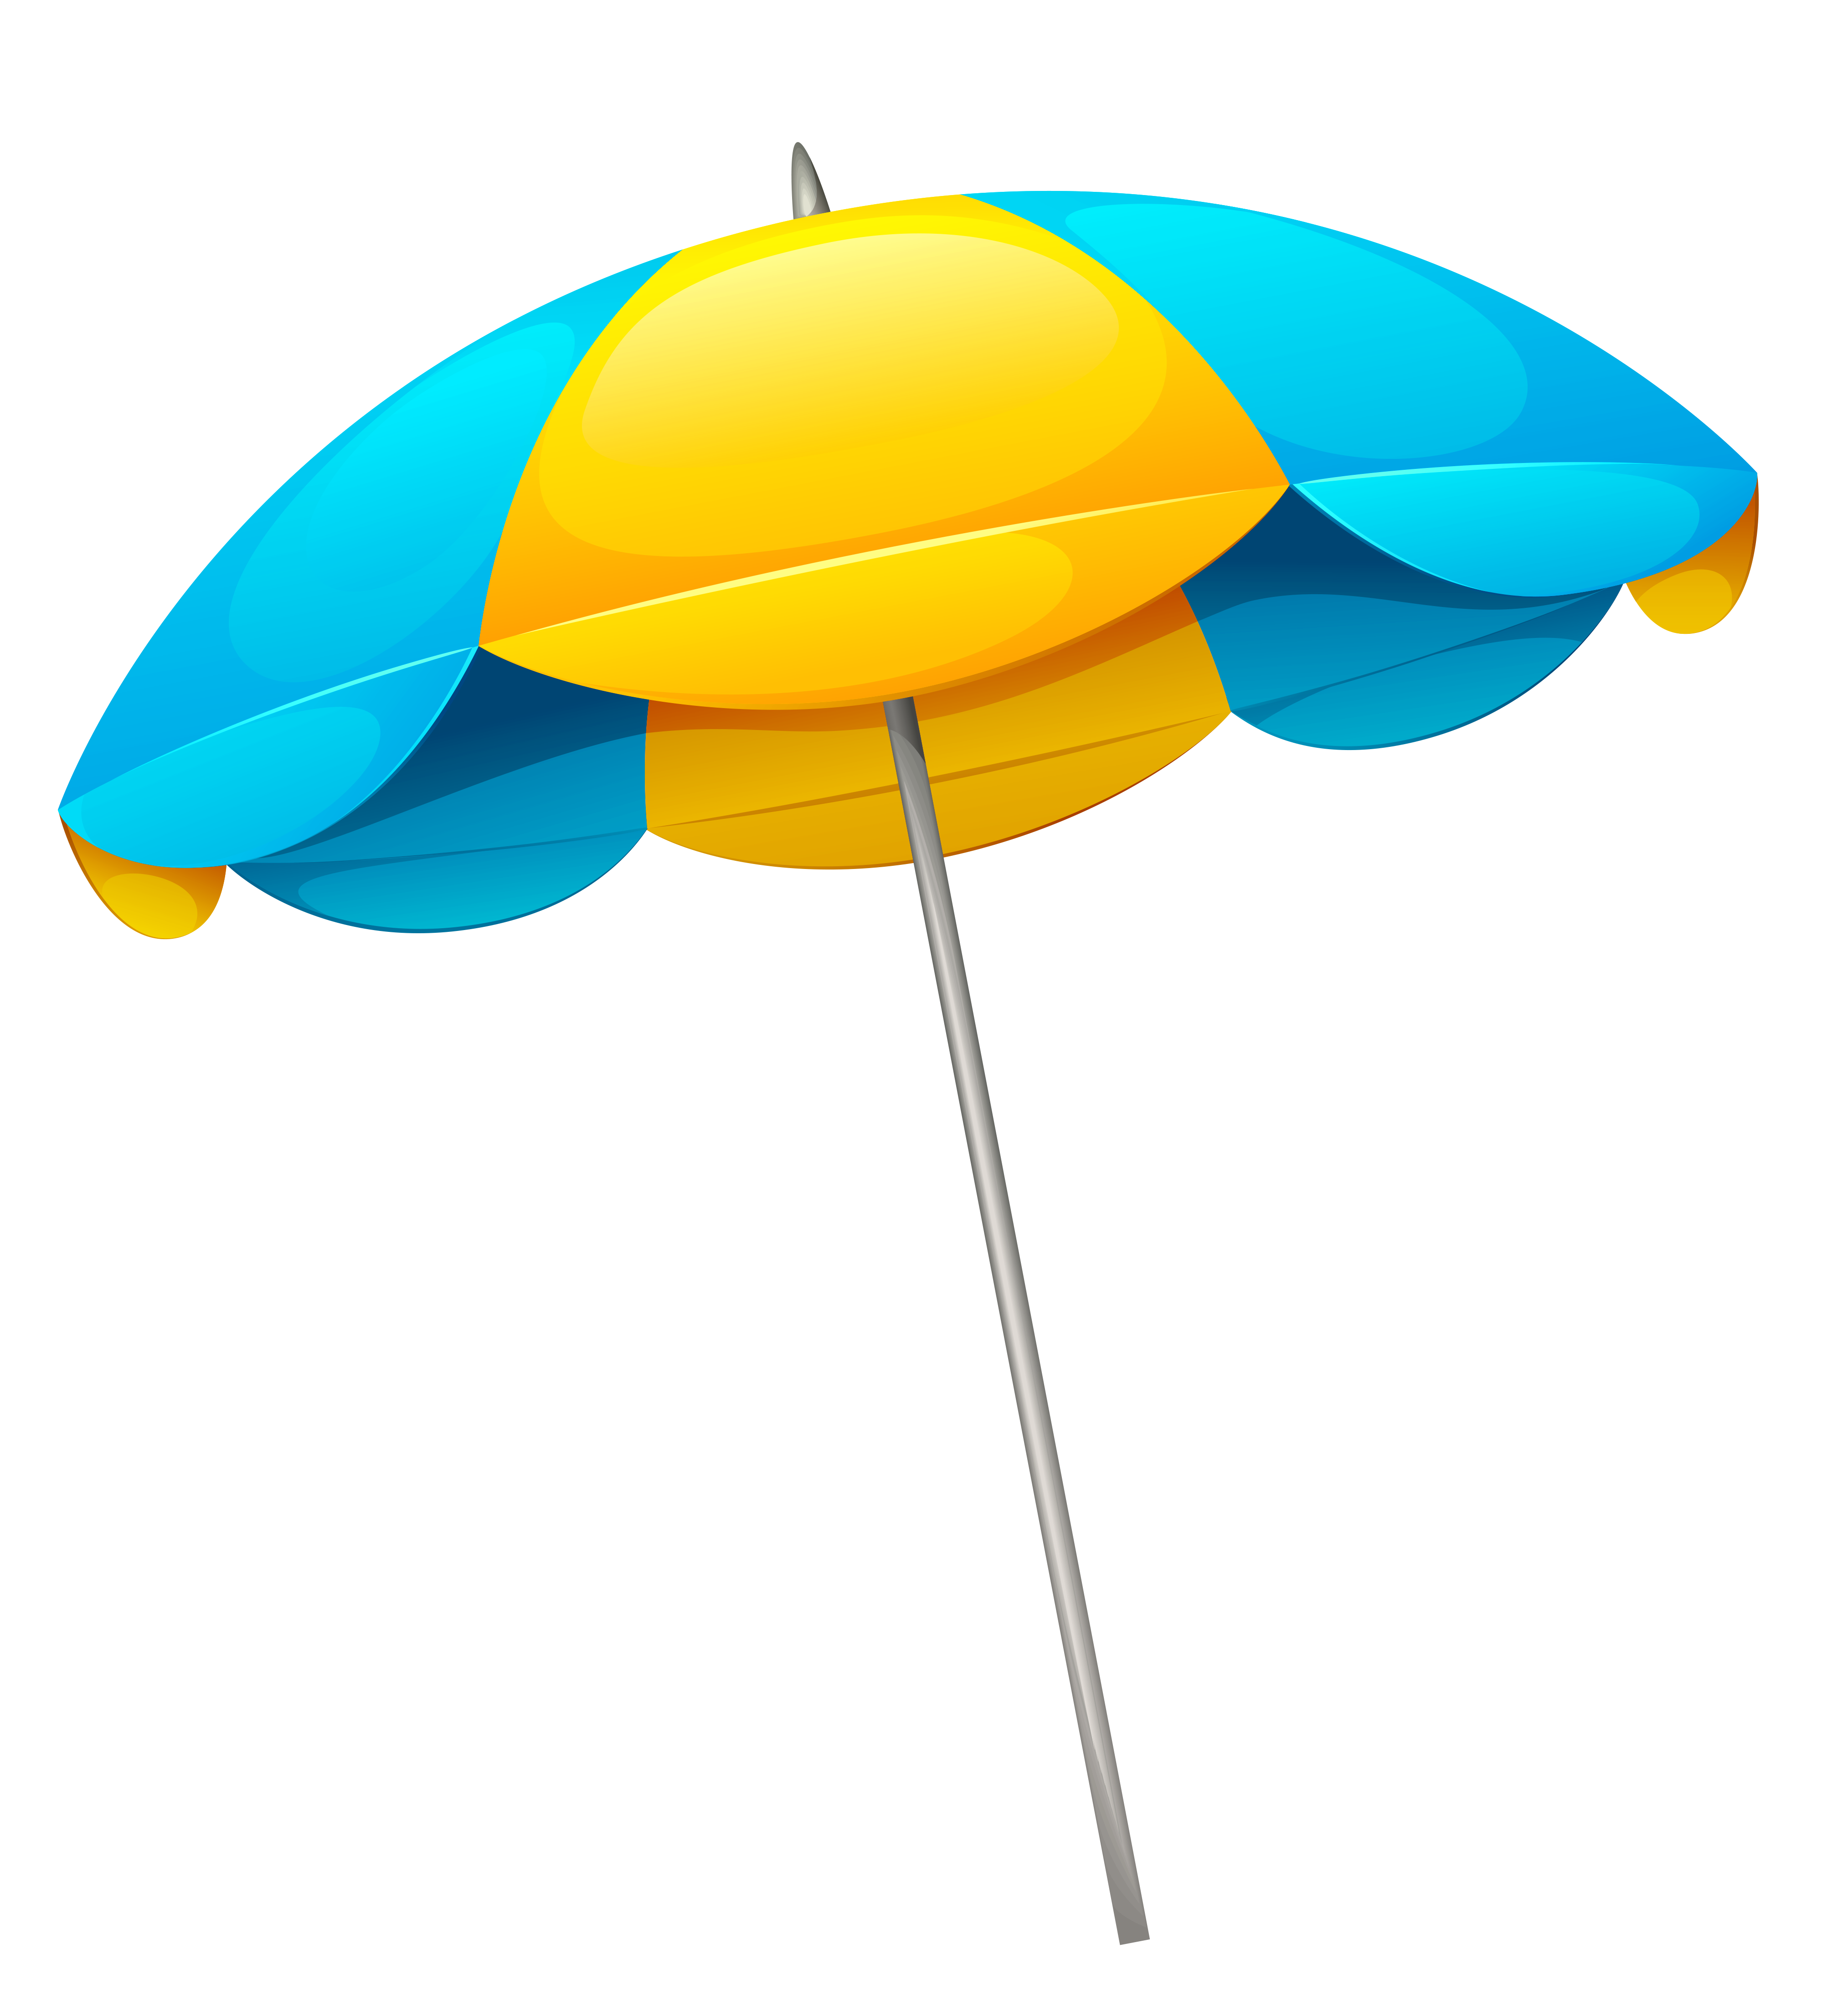 Beach Umbrella Vector at GetDrawings.com.